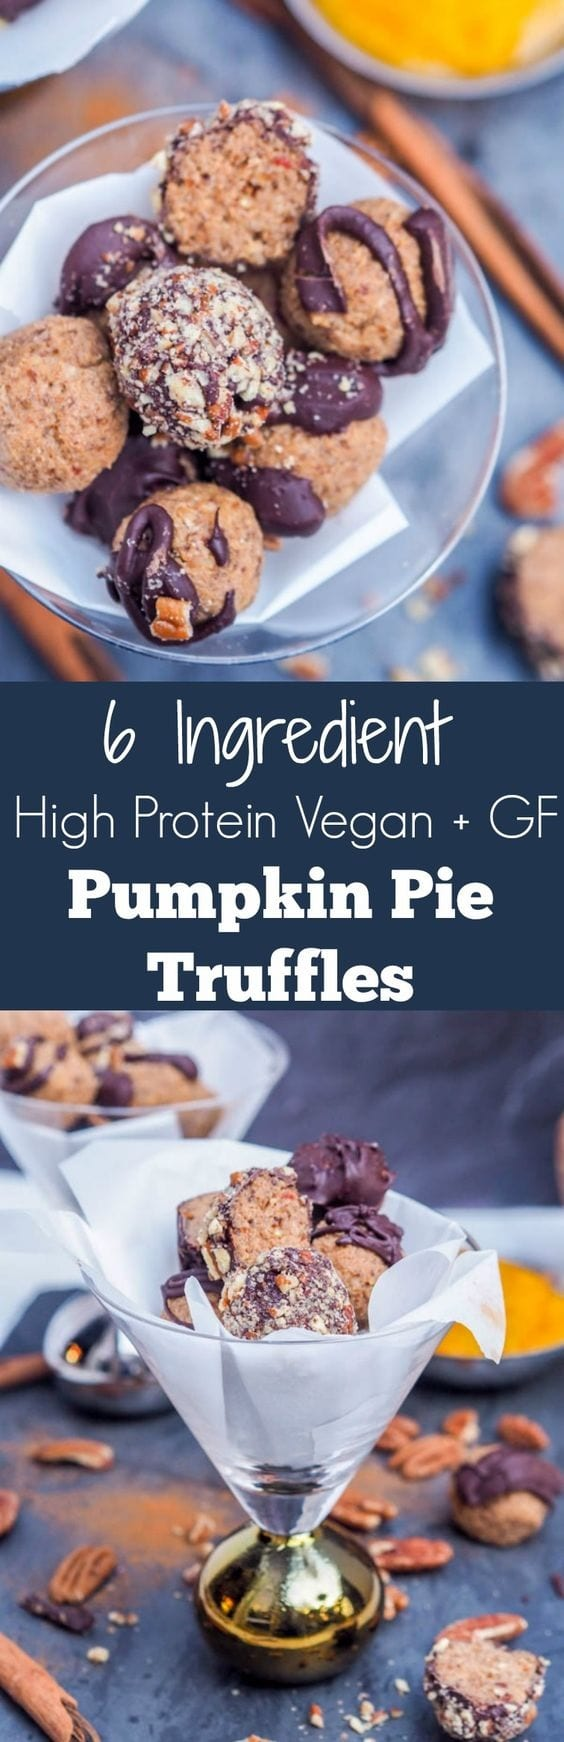 6 ingredient healthy high protein vegan, refined sugar + gluten free pumpkin pie truffles. Ready in minutes. Makes for the perfect fall treat. Sweet enough for dessert yet healthy enough as a snack.  #dessert #vegan #pumpkin #thanksgiving #healthydessert